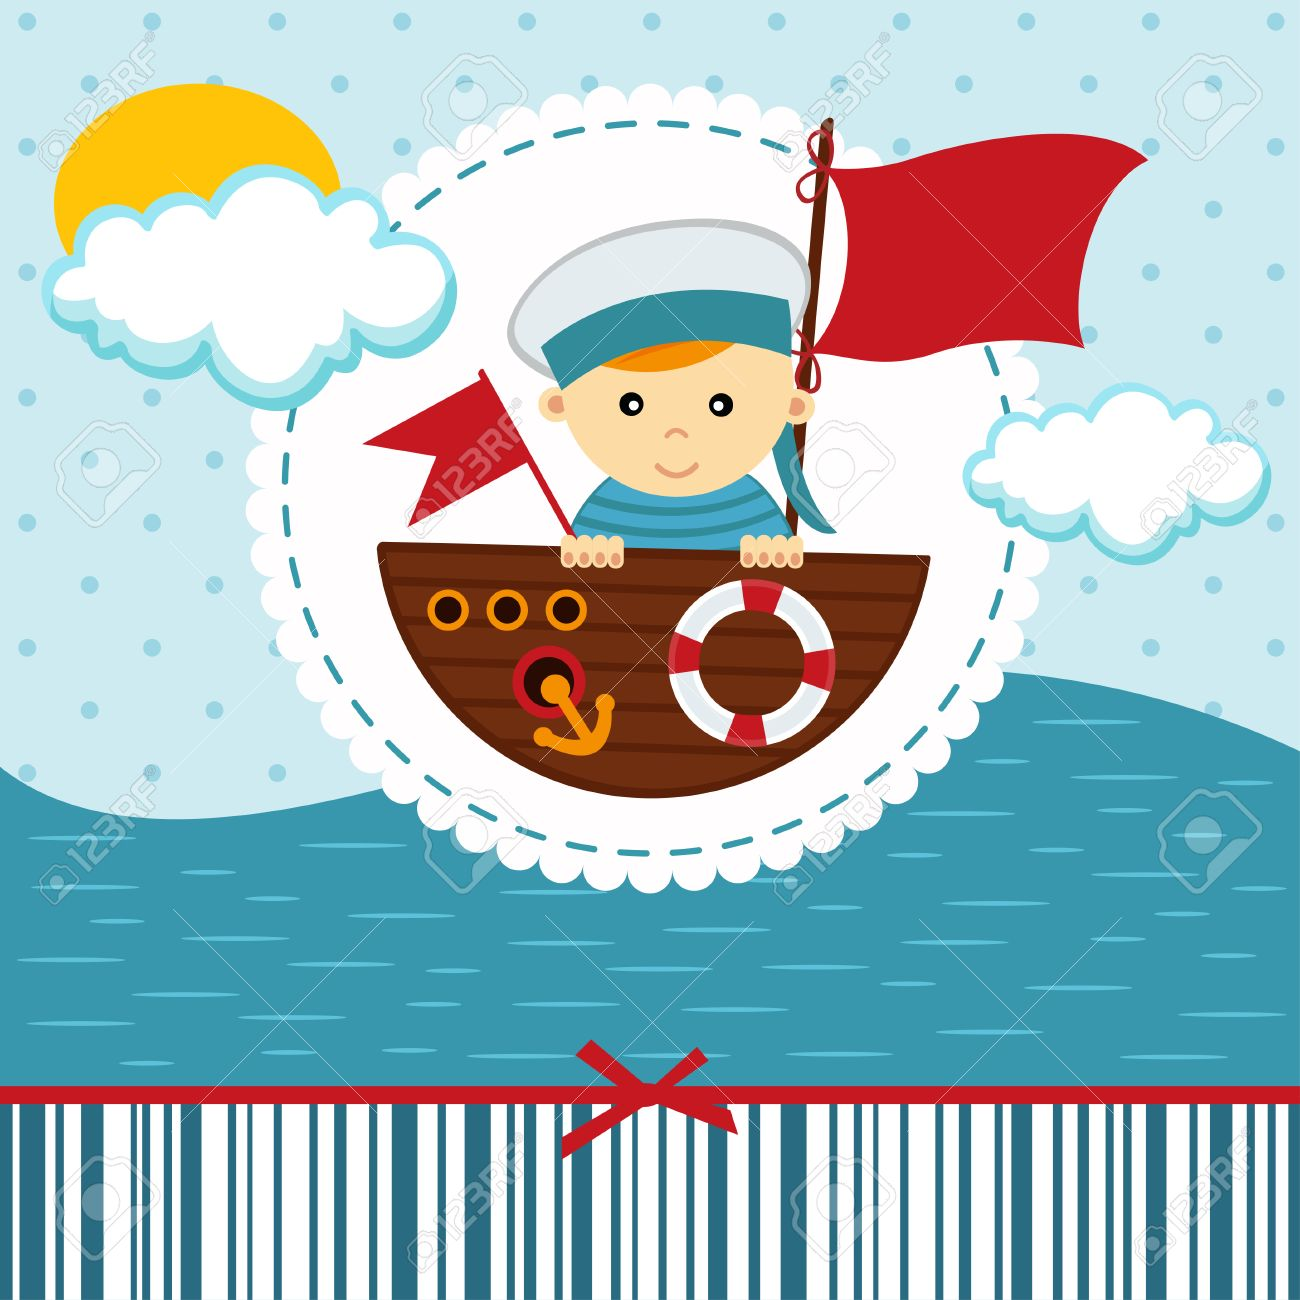 Sailor stock photos illustrations and vector art - Sailor Kid Baby Boy Sailor Vector Illustration